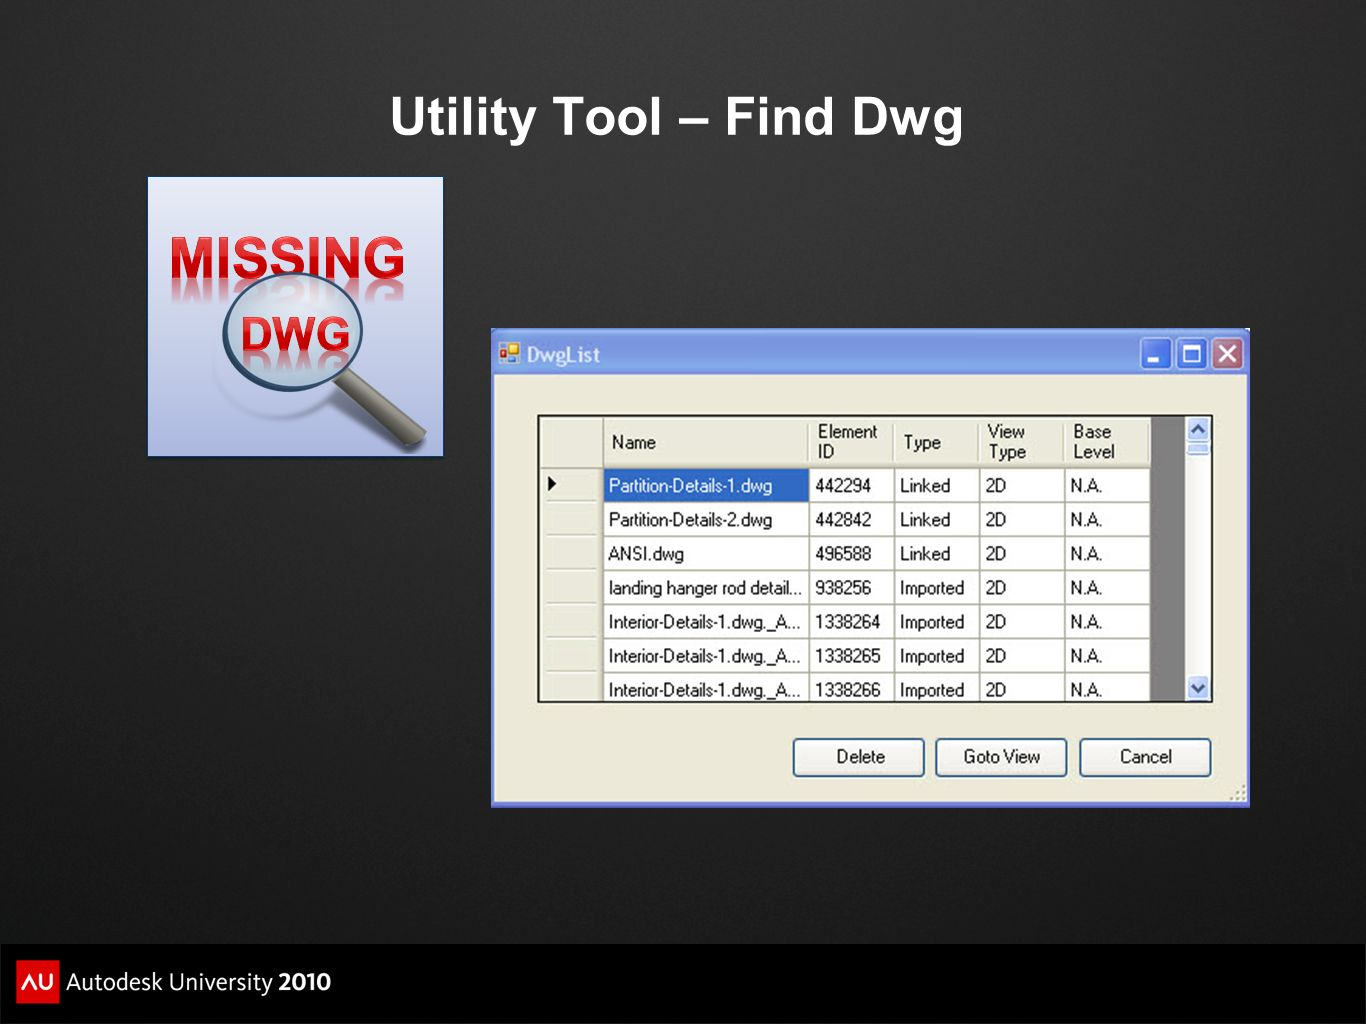 Utility Tool – Find Dwg MissinG Dwg